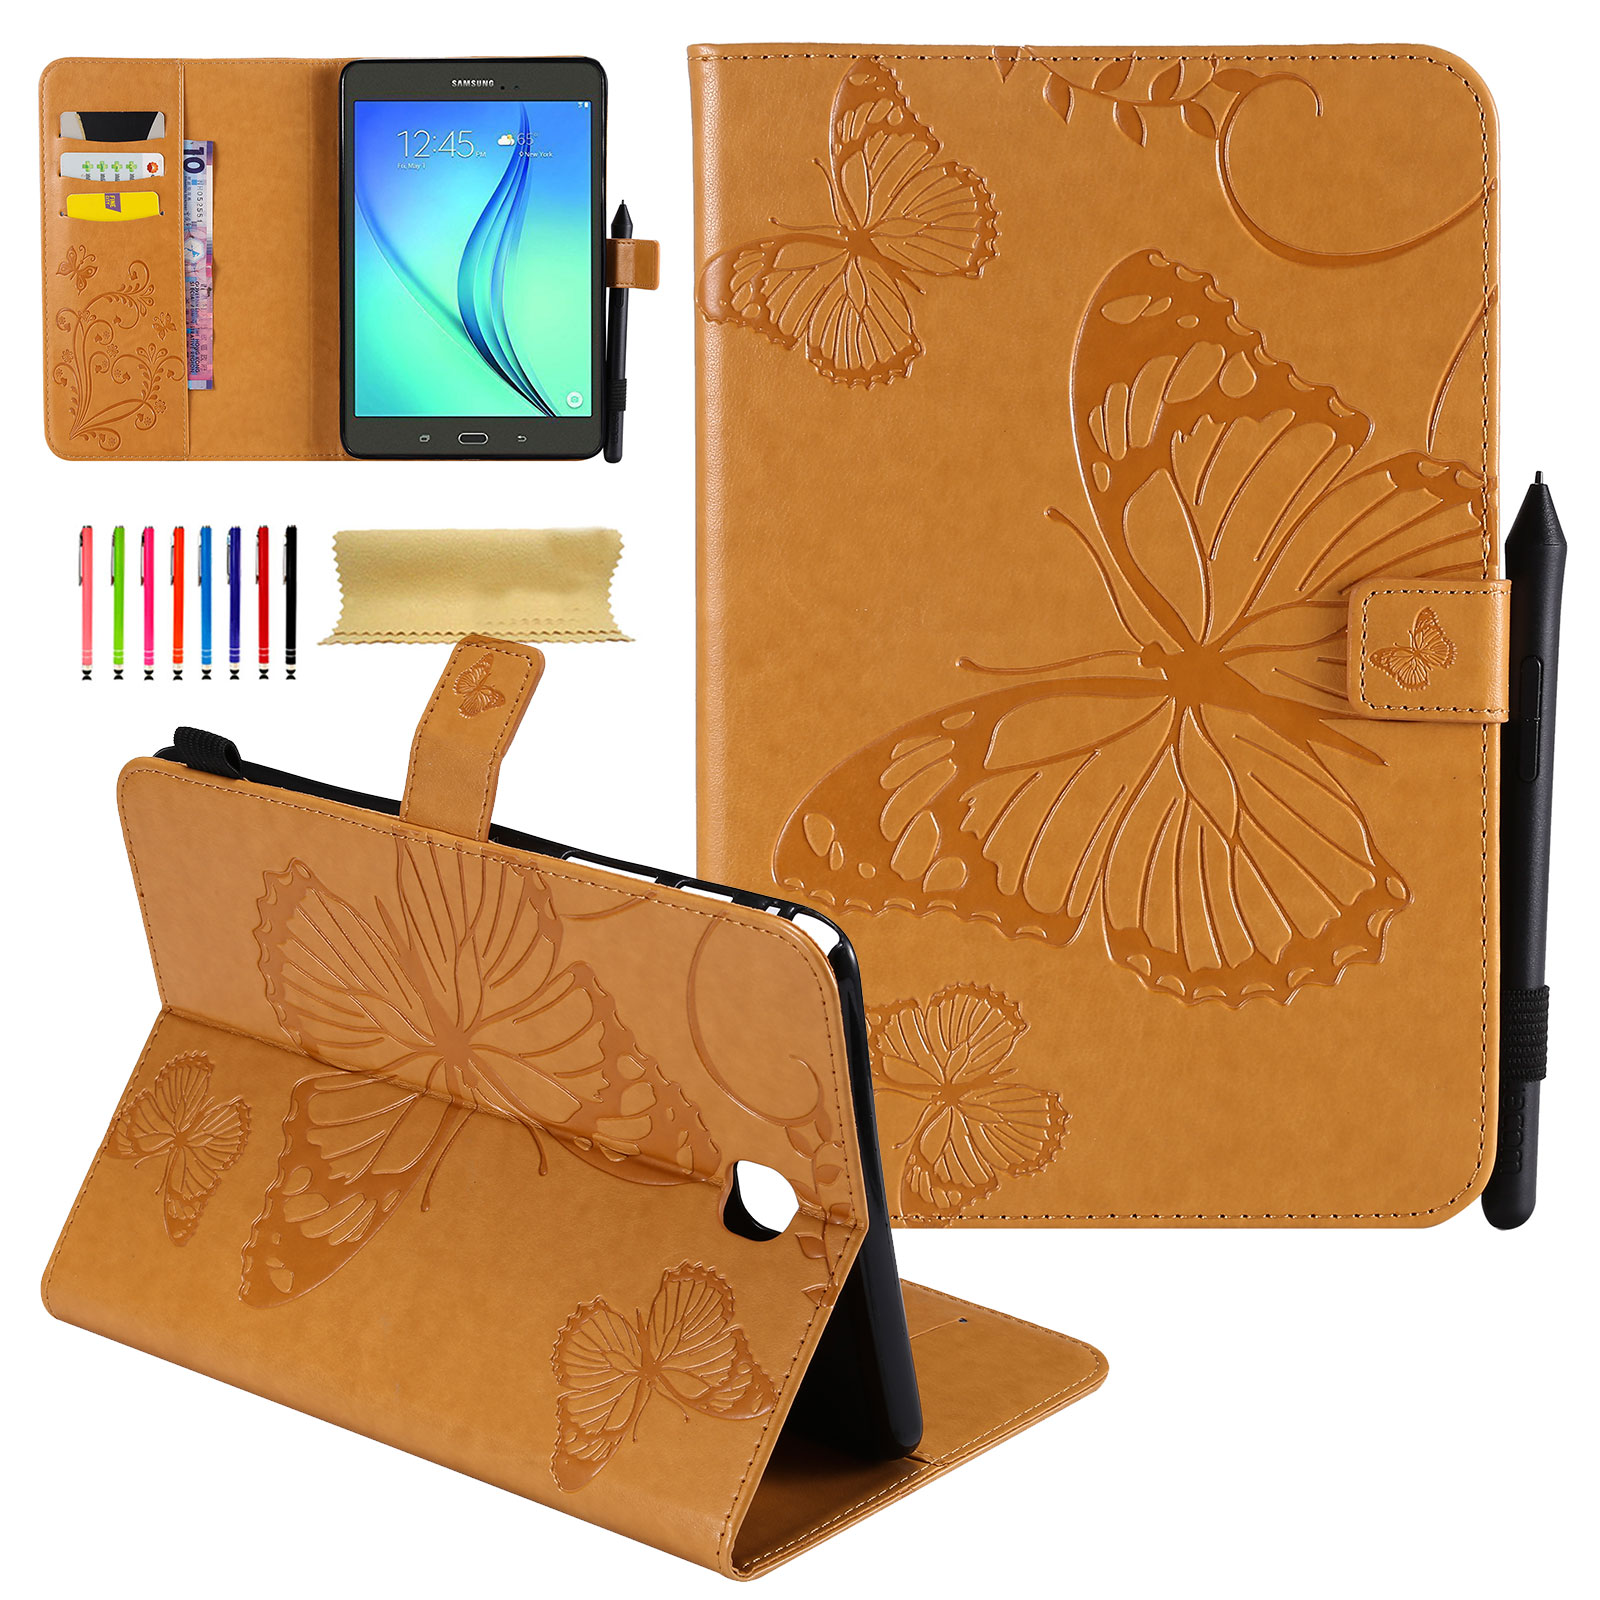 Galaxy Tab A 8.0 2015 Release Case, Goodest [Embossed Butterfly] Smart PU Leather Stand Cover w/ Auto Wake Sleep Function for Samsung Galaxy Tab A 8.0 inch 2015 Model SM-T350/P350 Tablet, Yellow